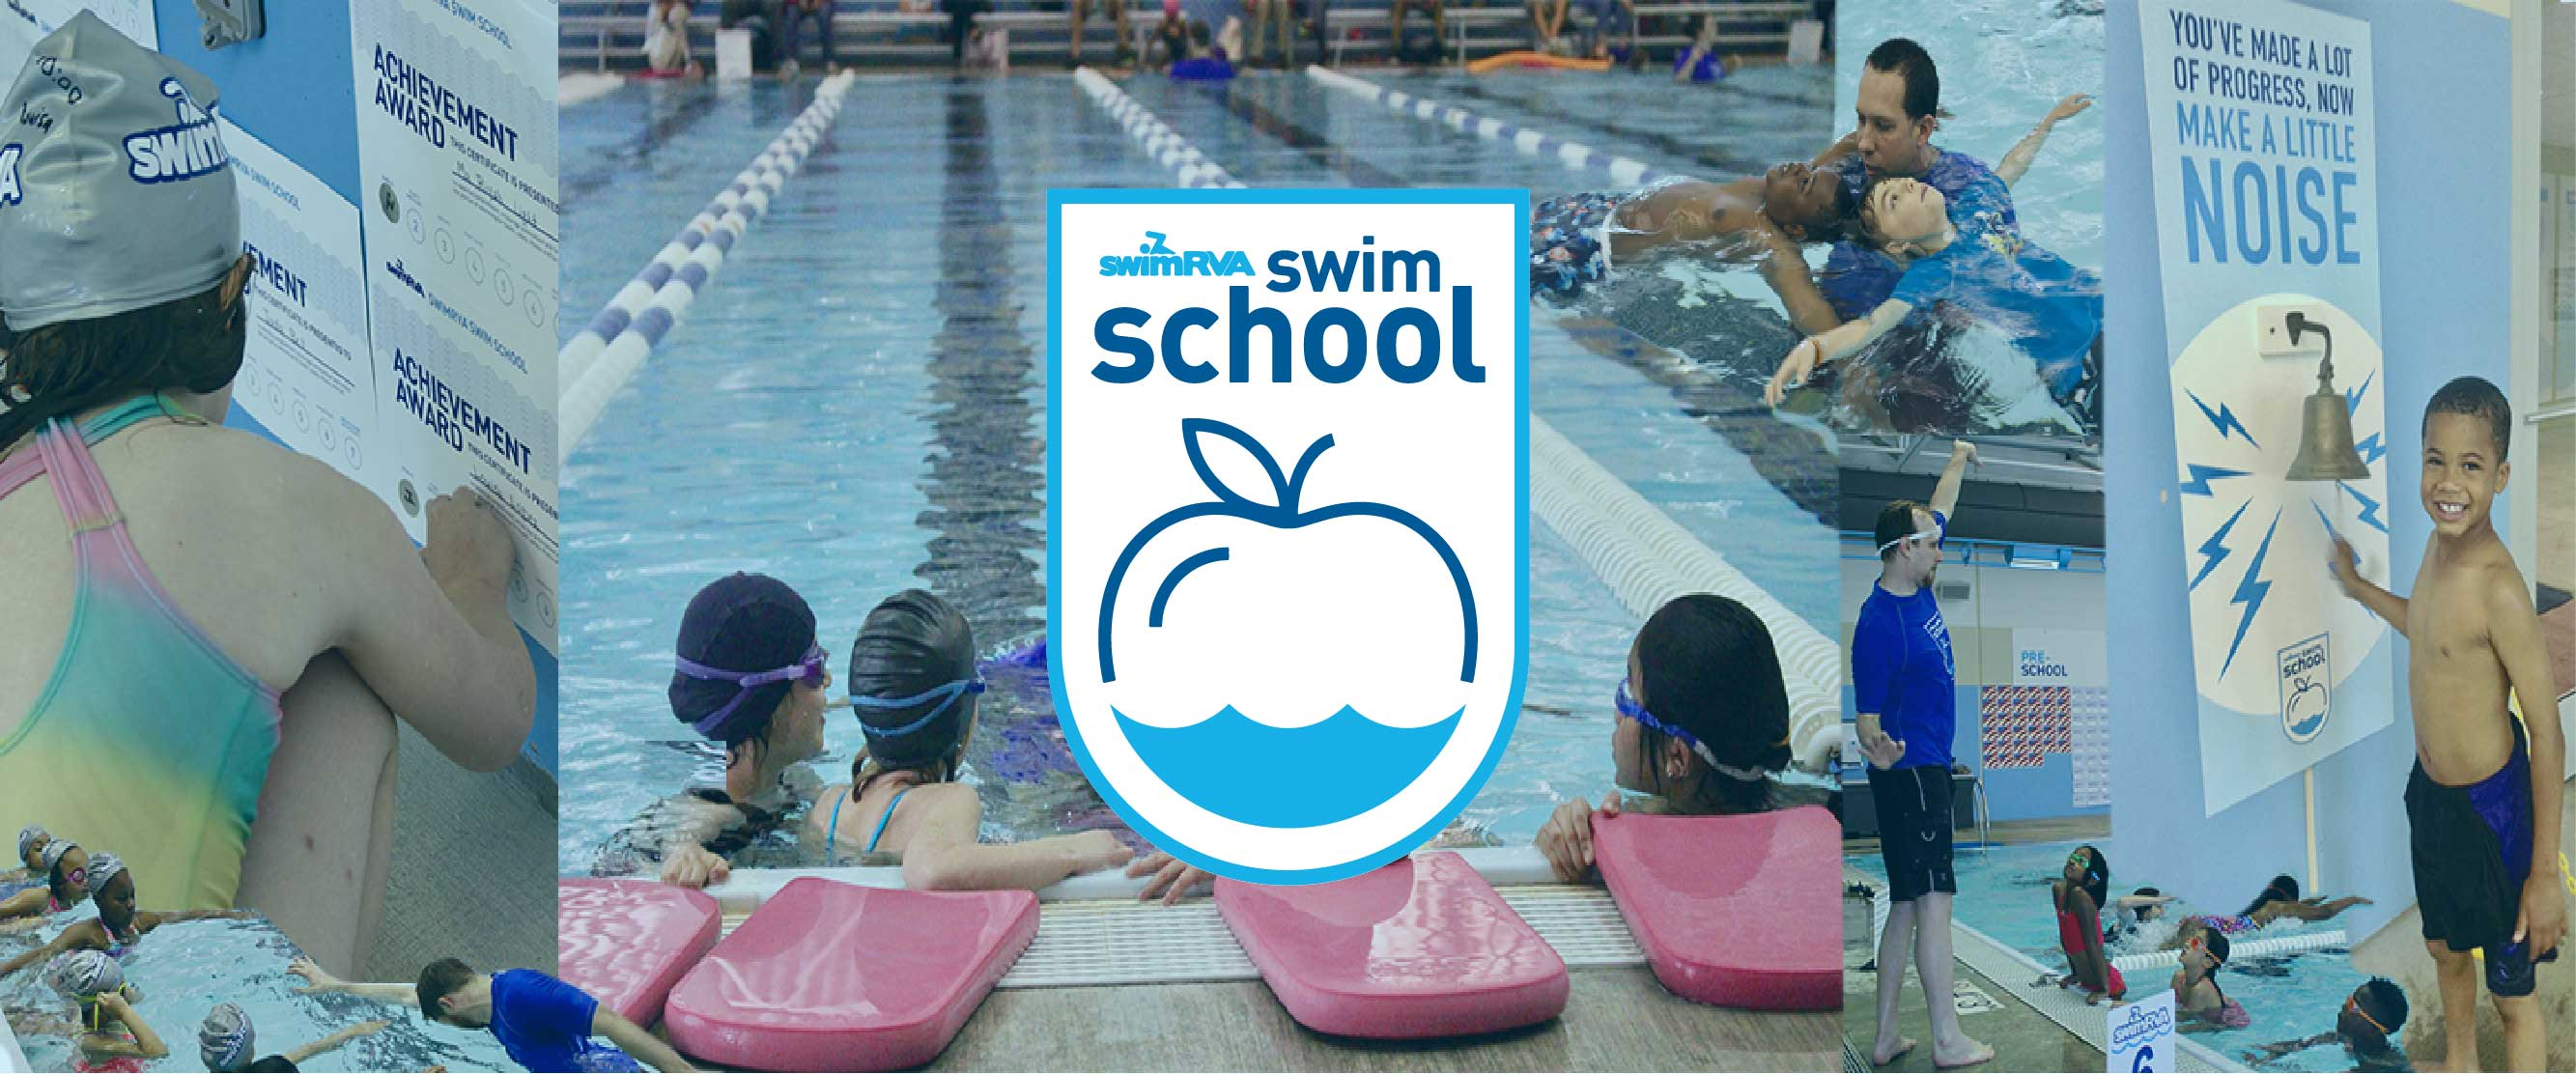 SwimRVA Swim School